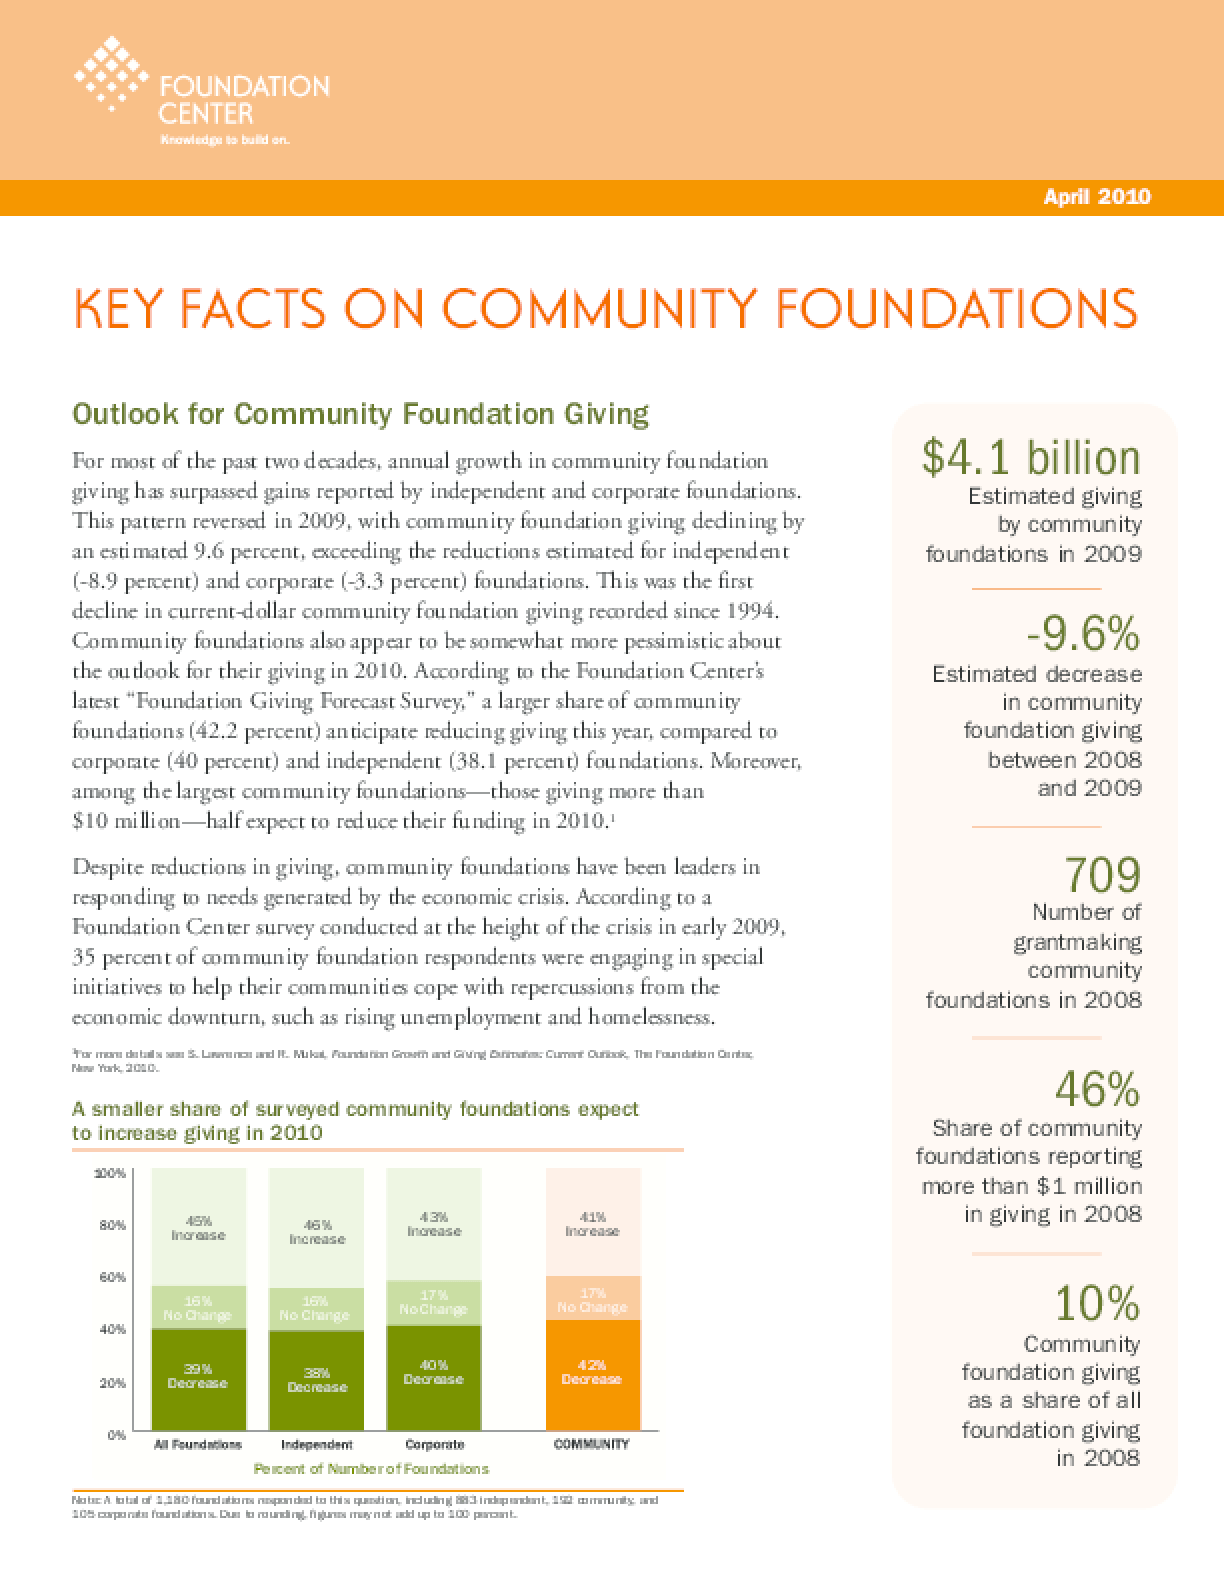 Key Facts on Community Foundations 2010